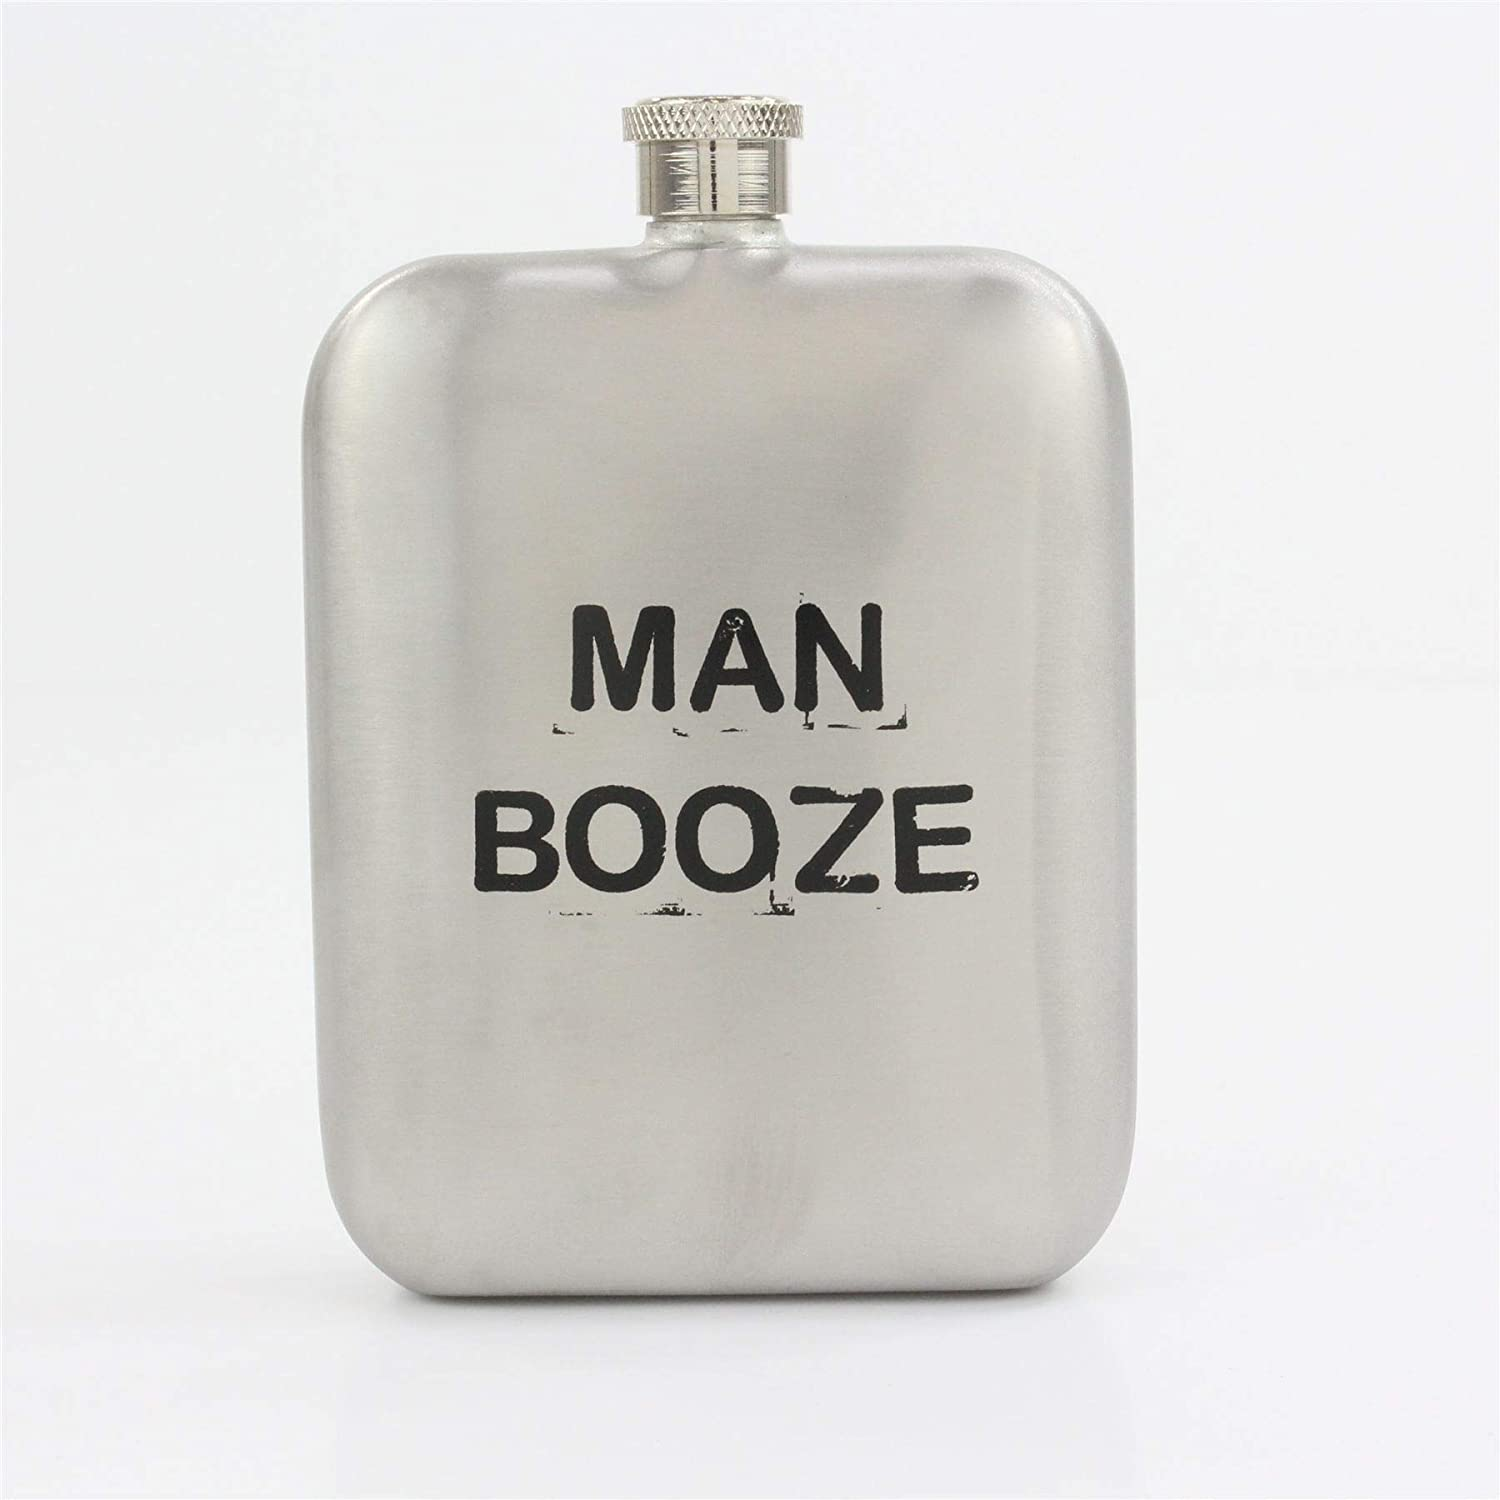 Silver square MAN BOOZE Hip Flask 5.5oz with Screw Top Lid for a Jolly Gift